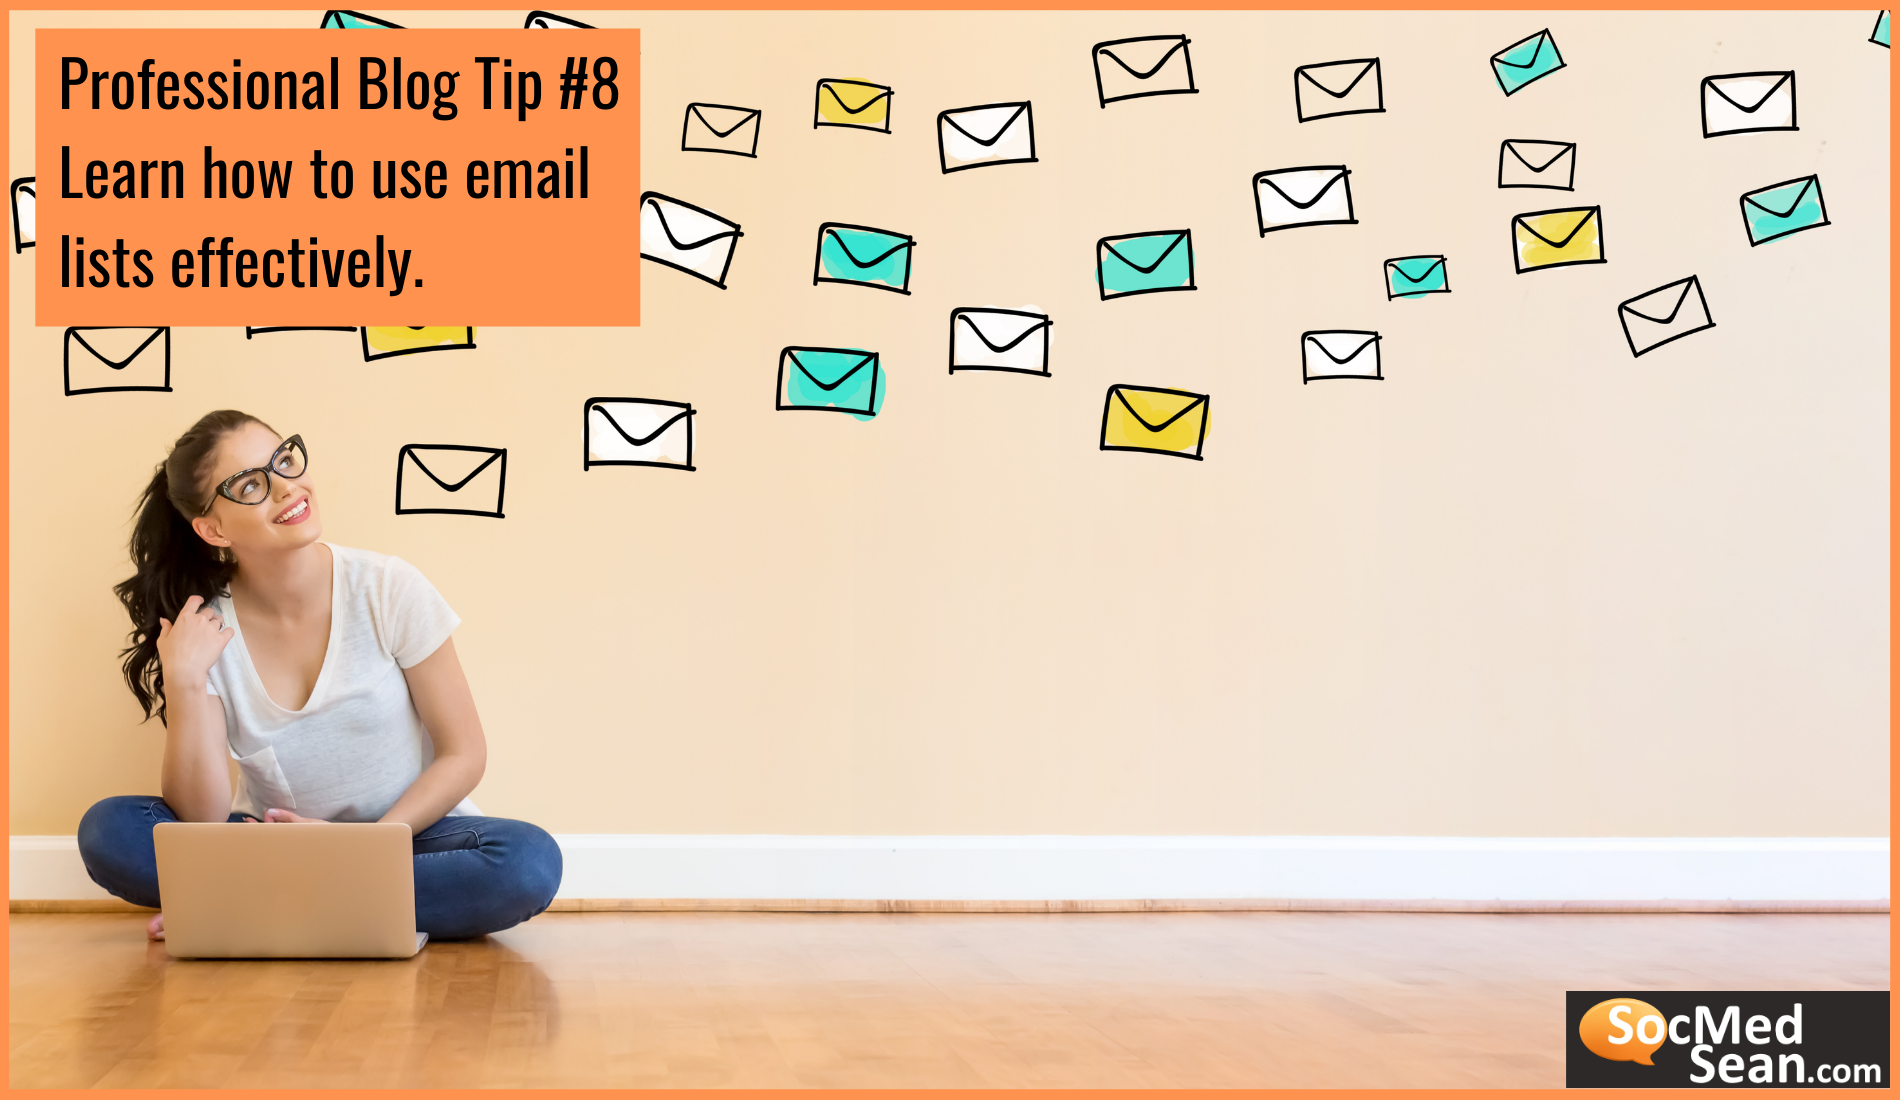 Blogging Tip - Learn how to use email lists effectively